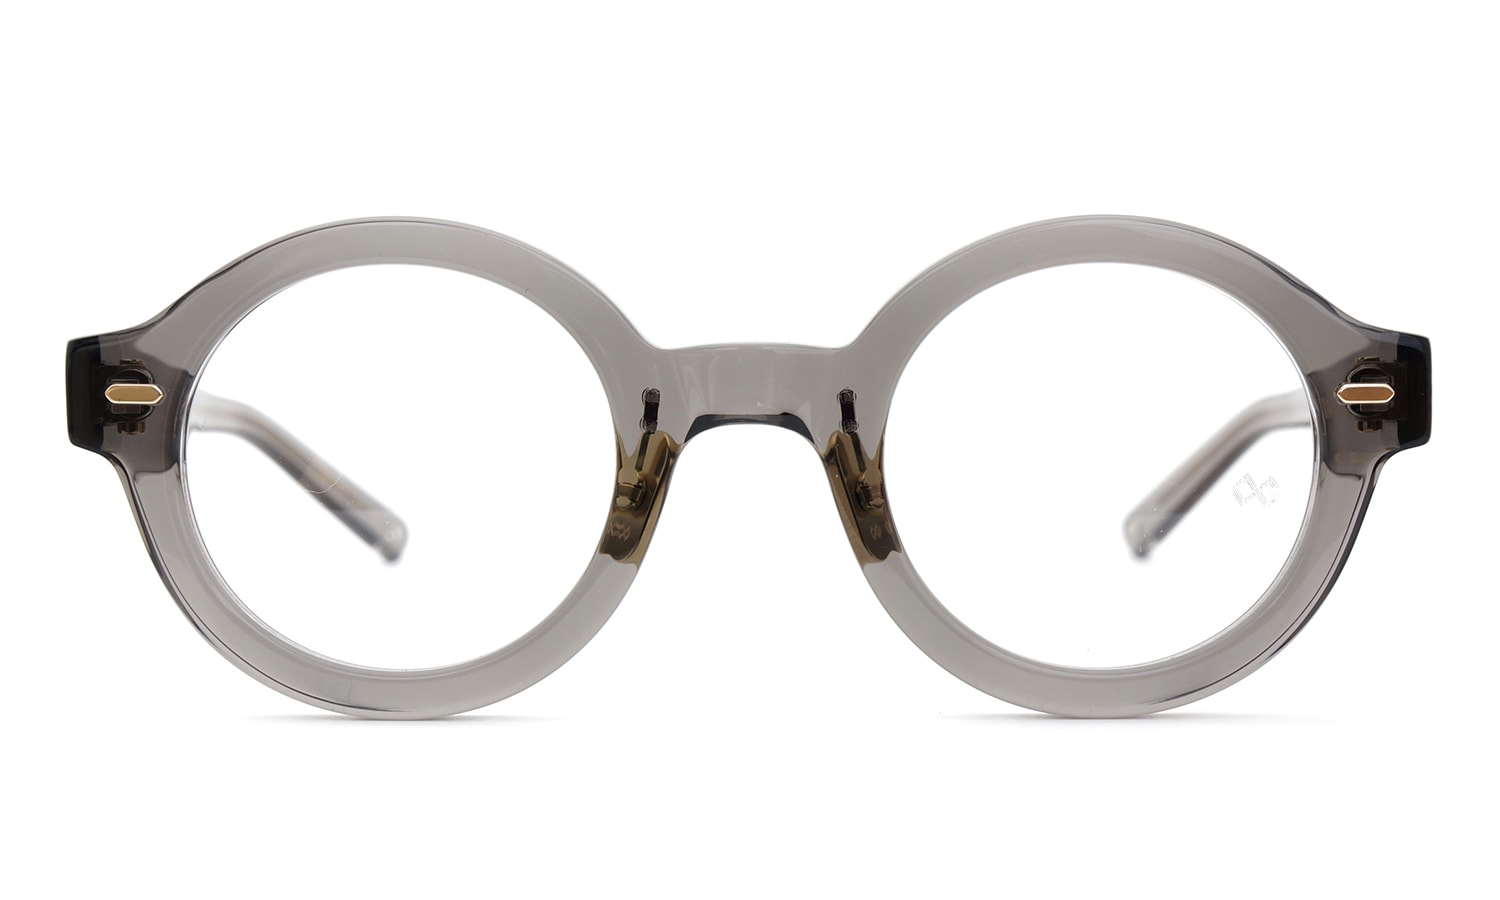 OG × OLIVER GOLDSMITH Re:SHEPPERTON 45 リ:シェパートン 2